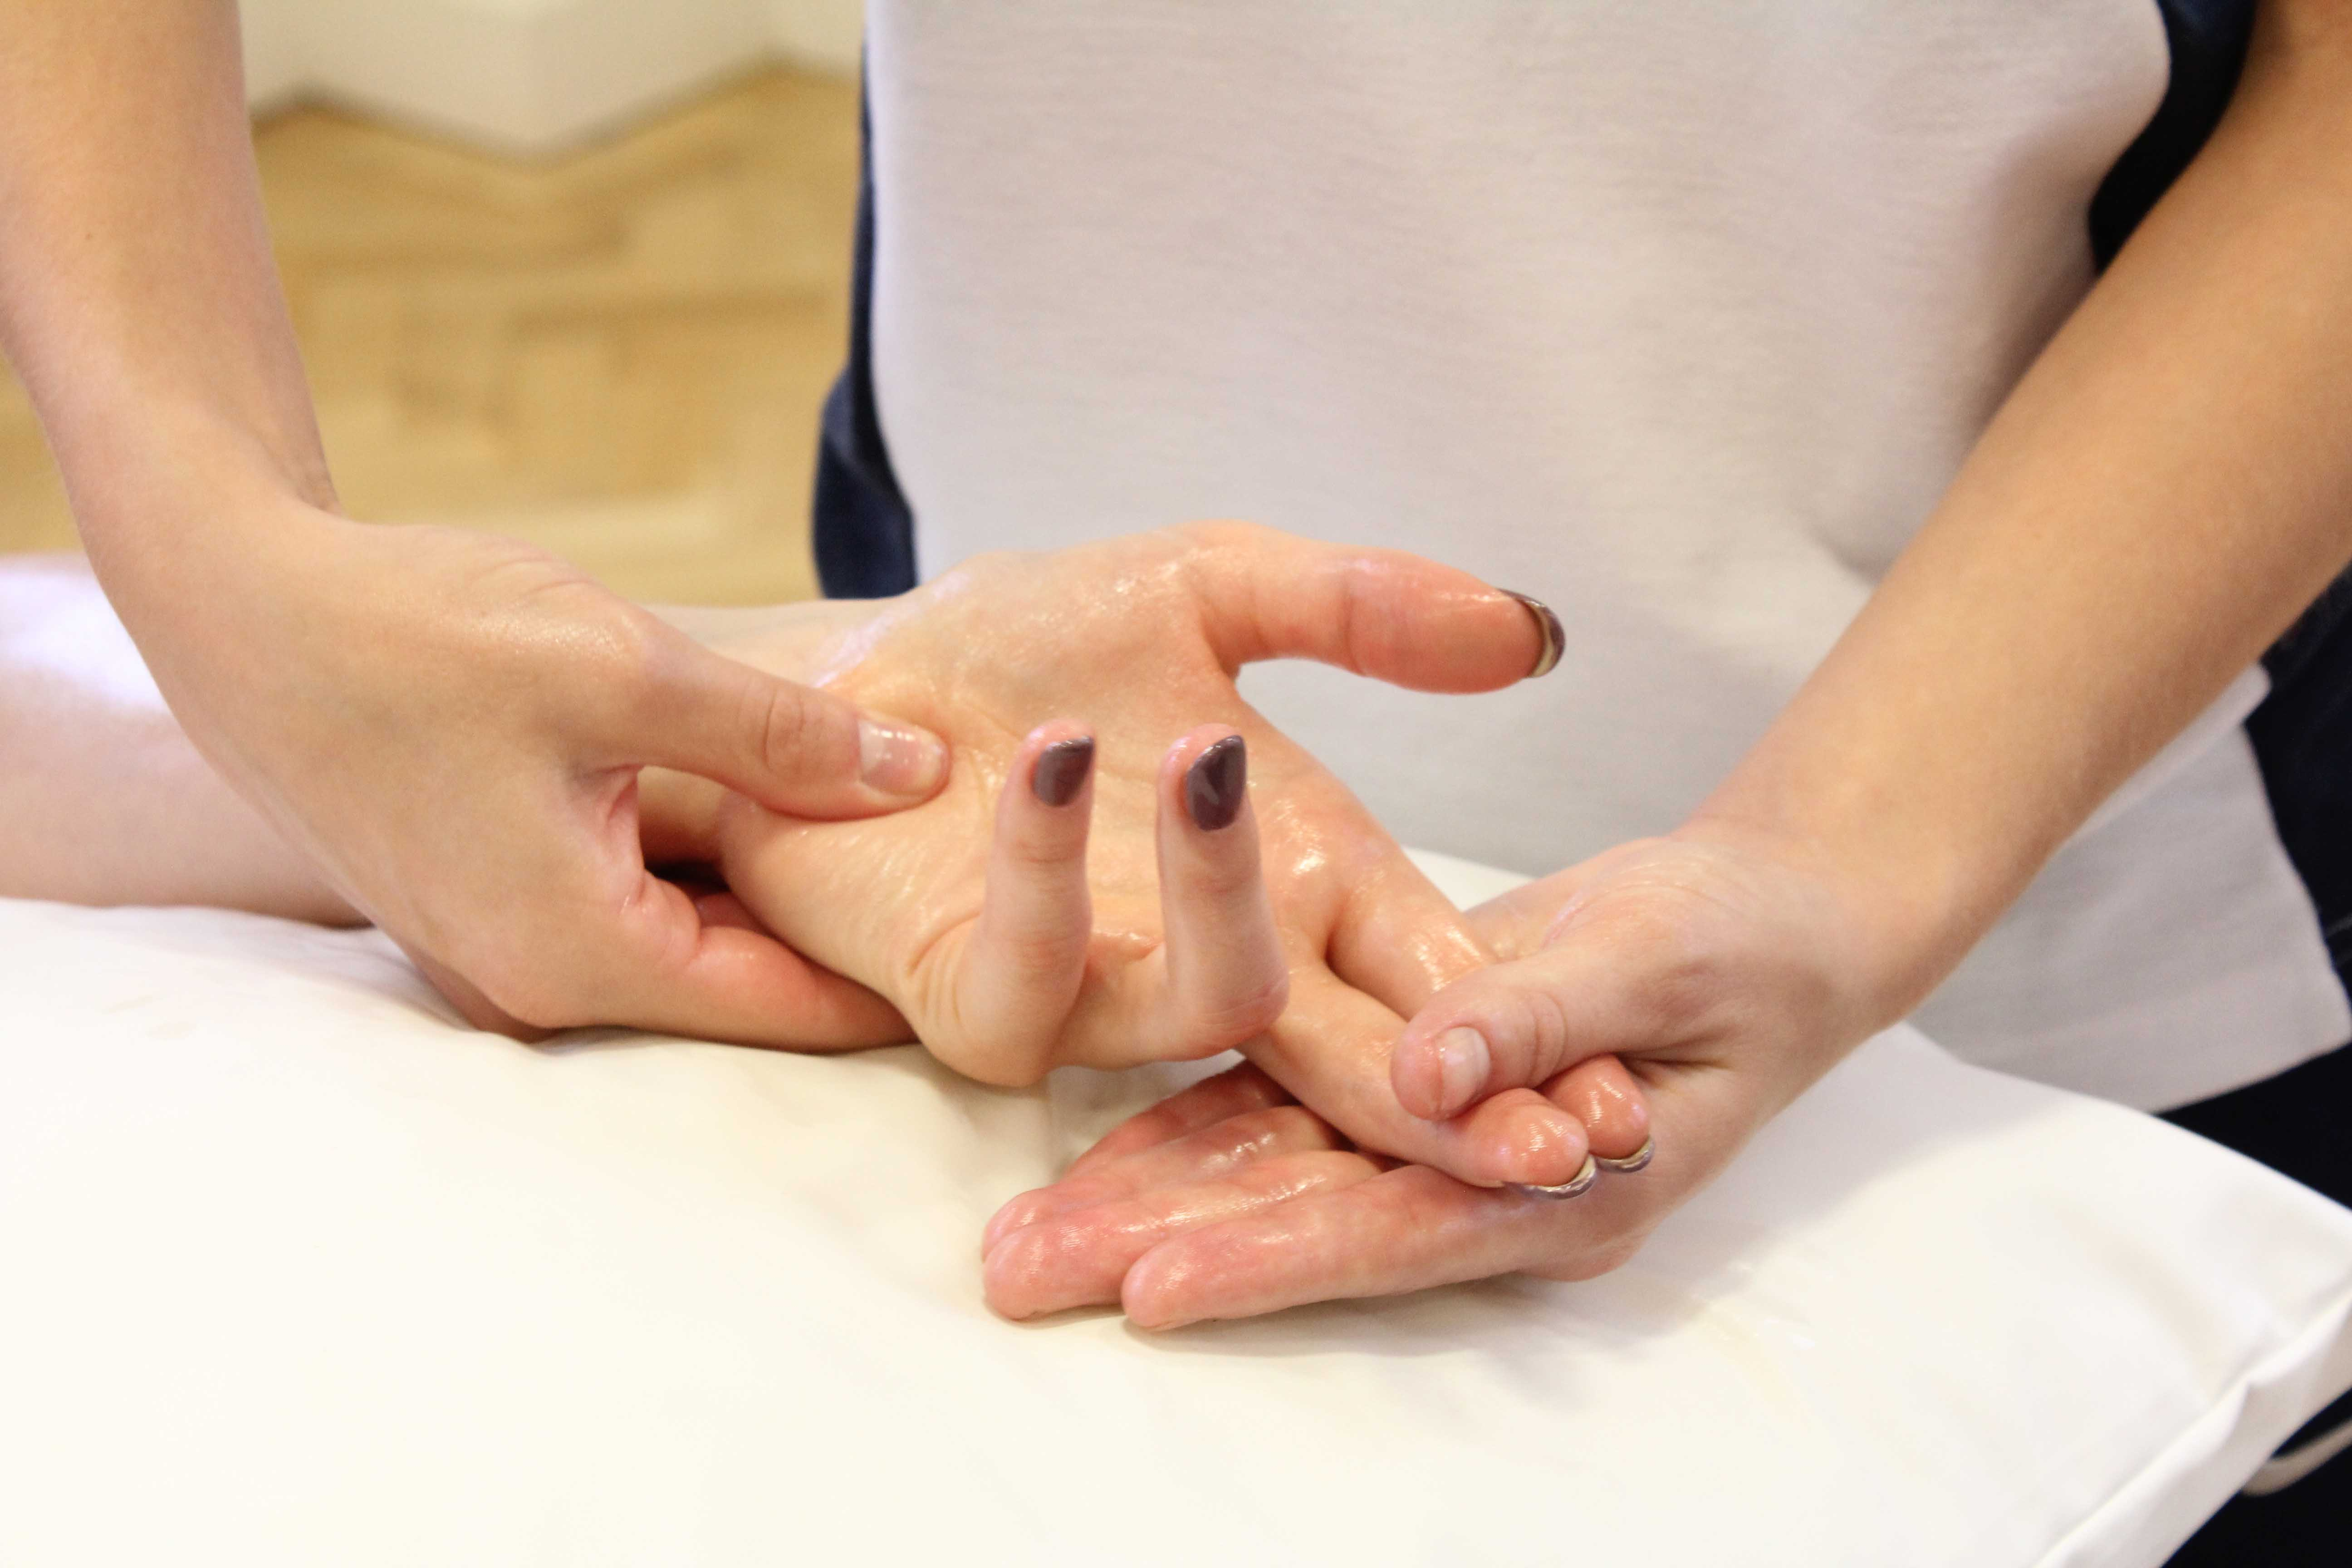 Ligament Injuries In The Fingers Hand Conditions